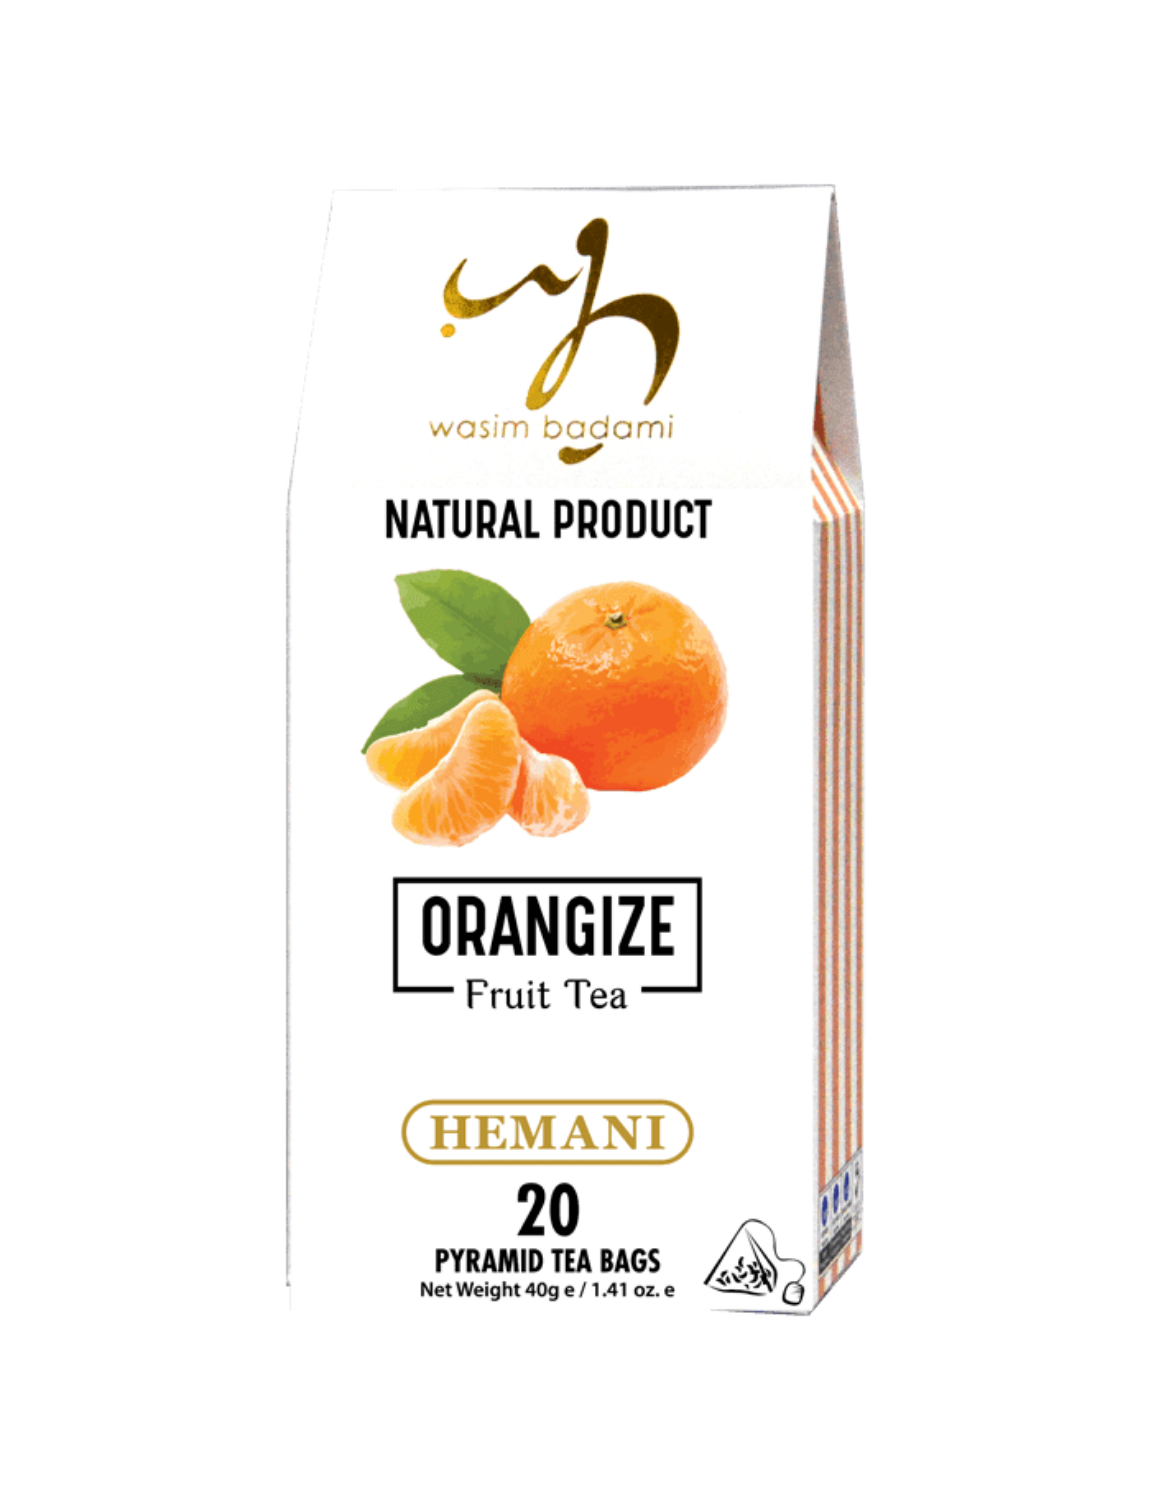 Orangize Fruit Tea